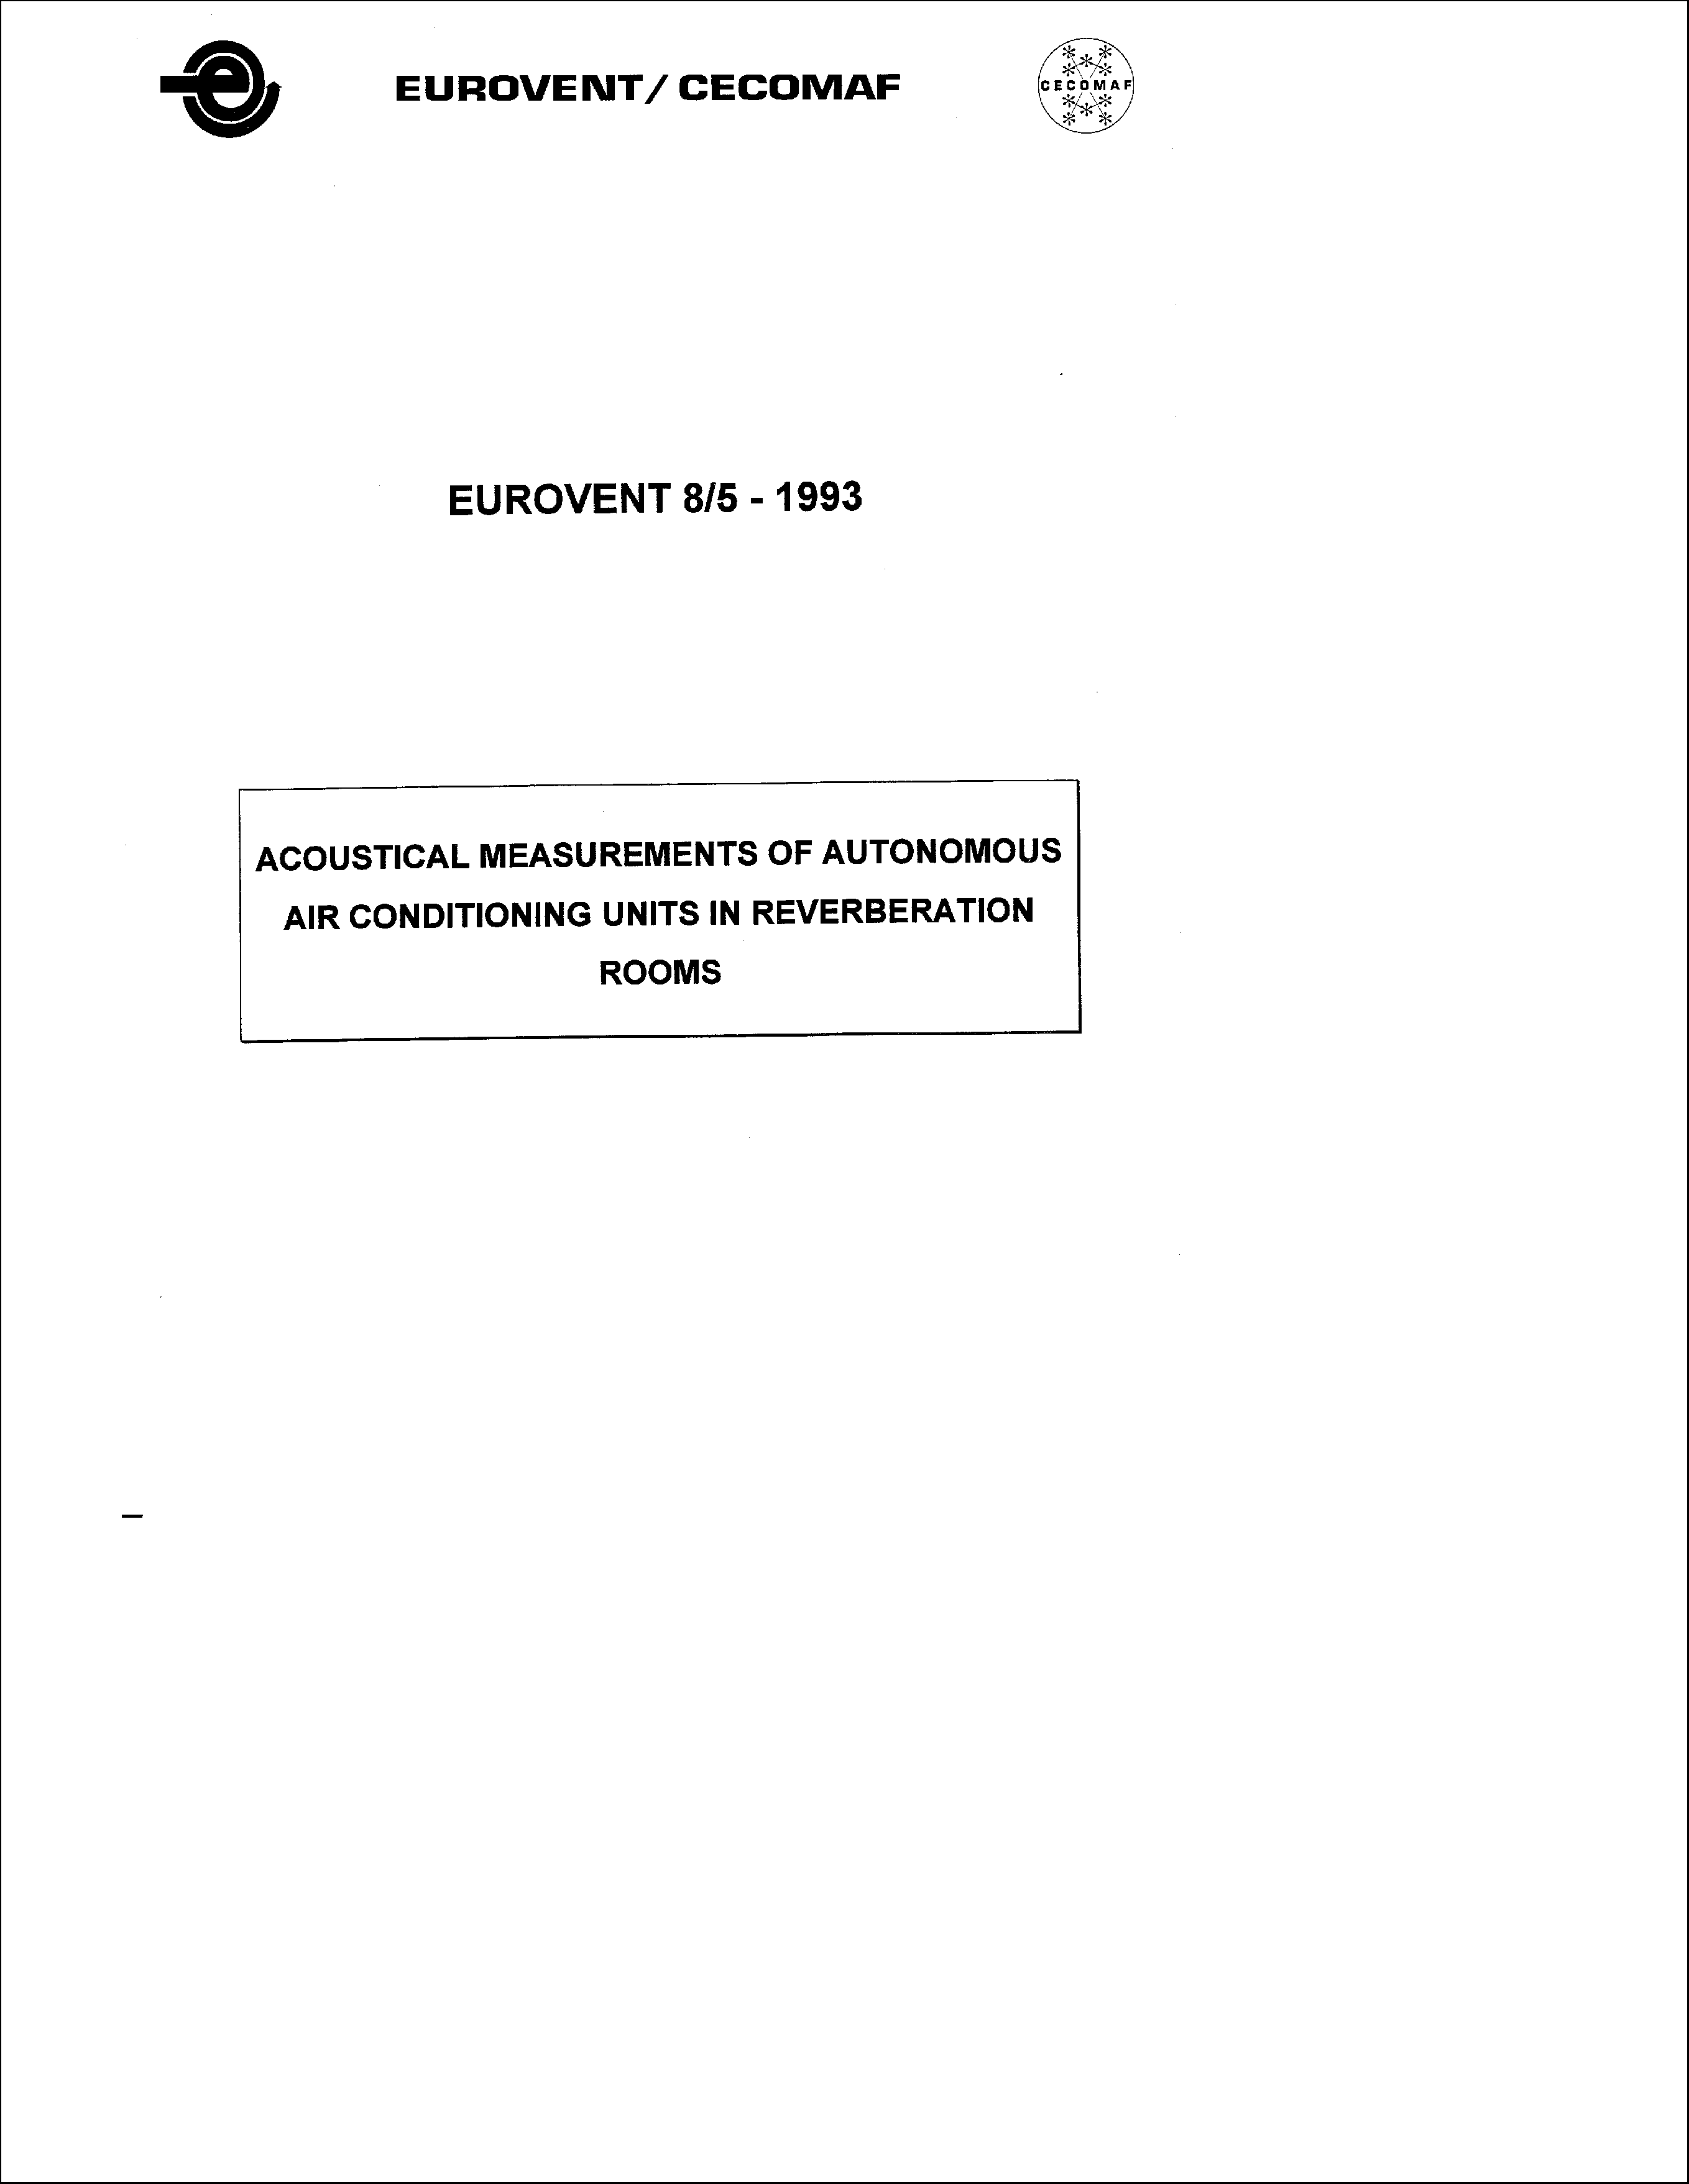 1993 - Acoustical measurements of autonomous air conditioning units in reverberation rooms